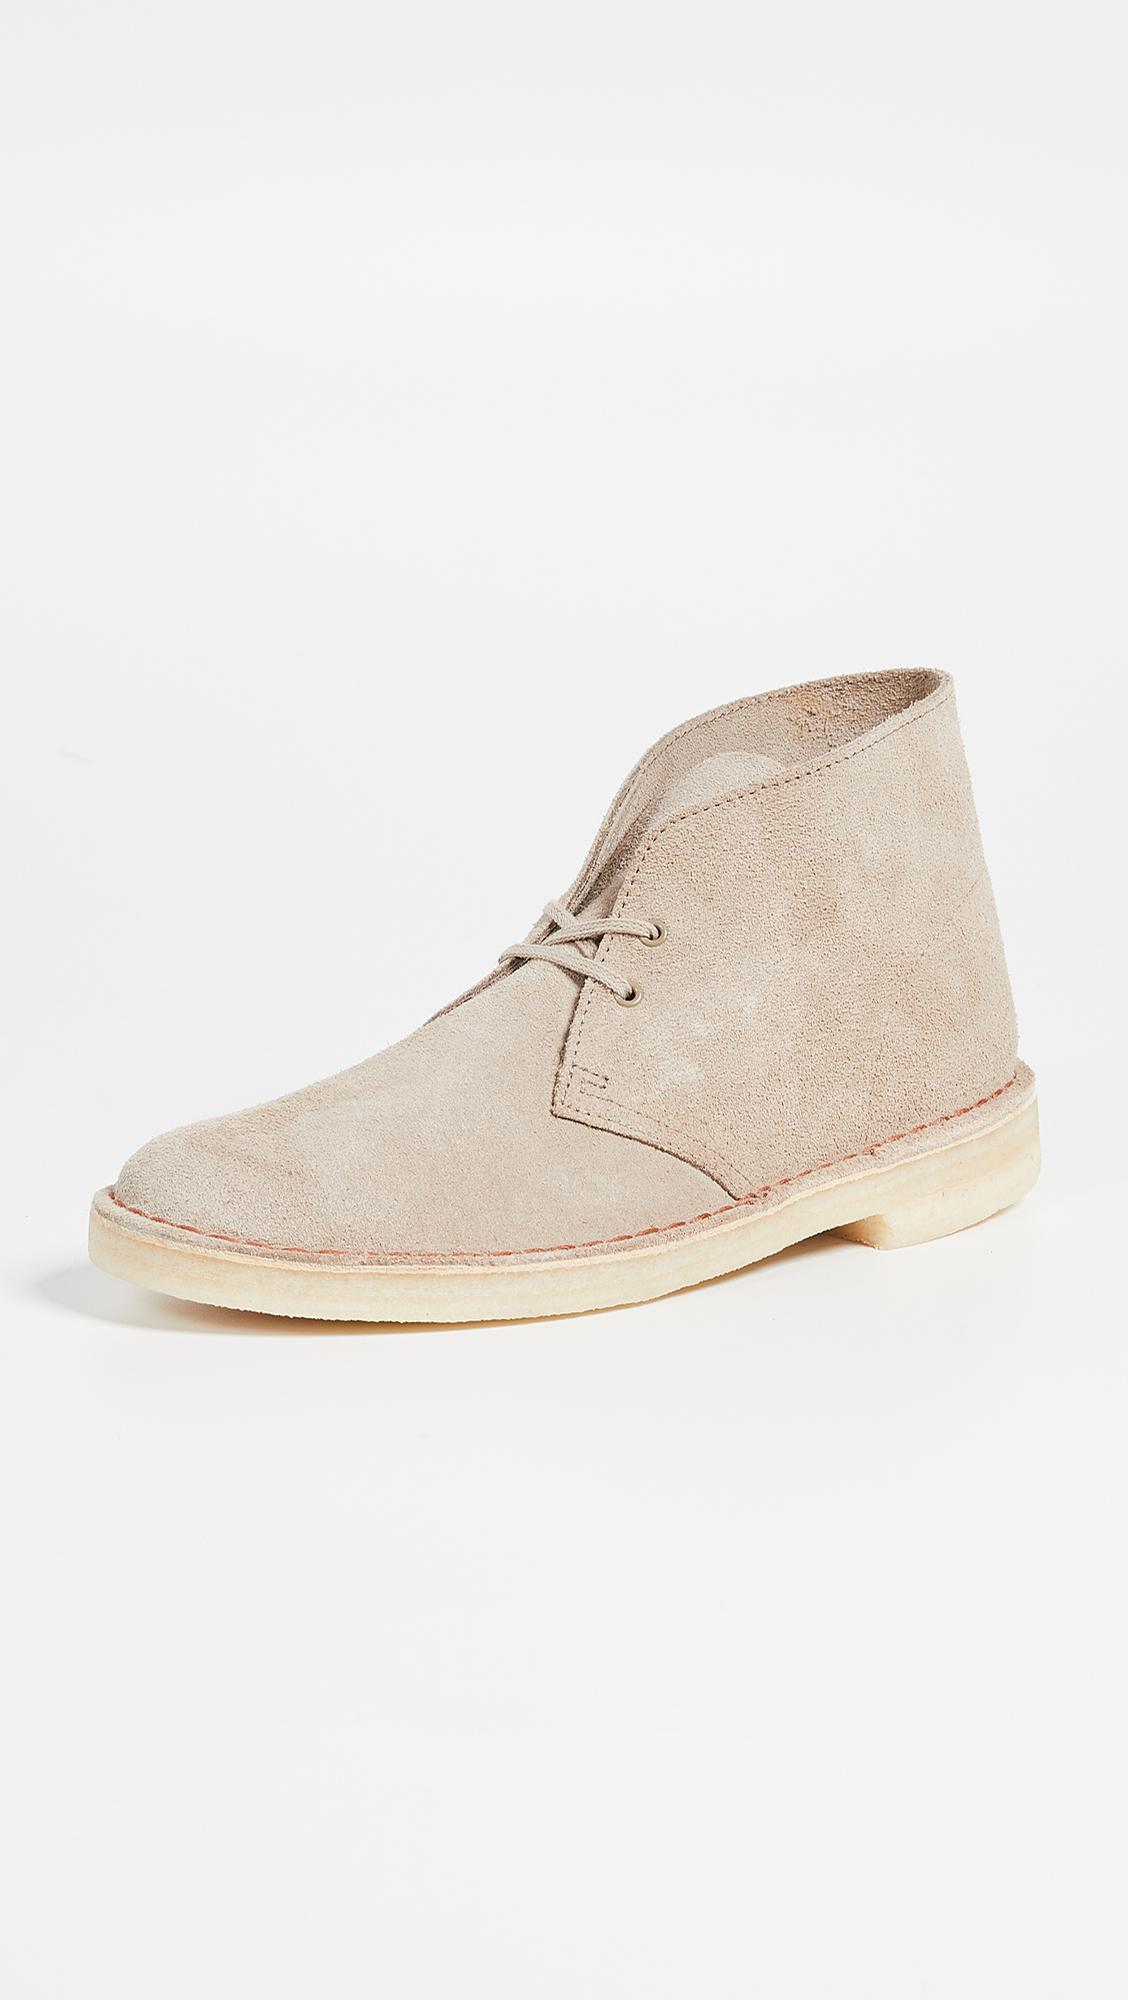 84bb19d75435b8 Lyst - Clarks Suede Desert Boots in Natural for Men